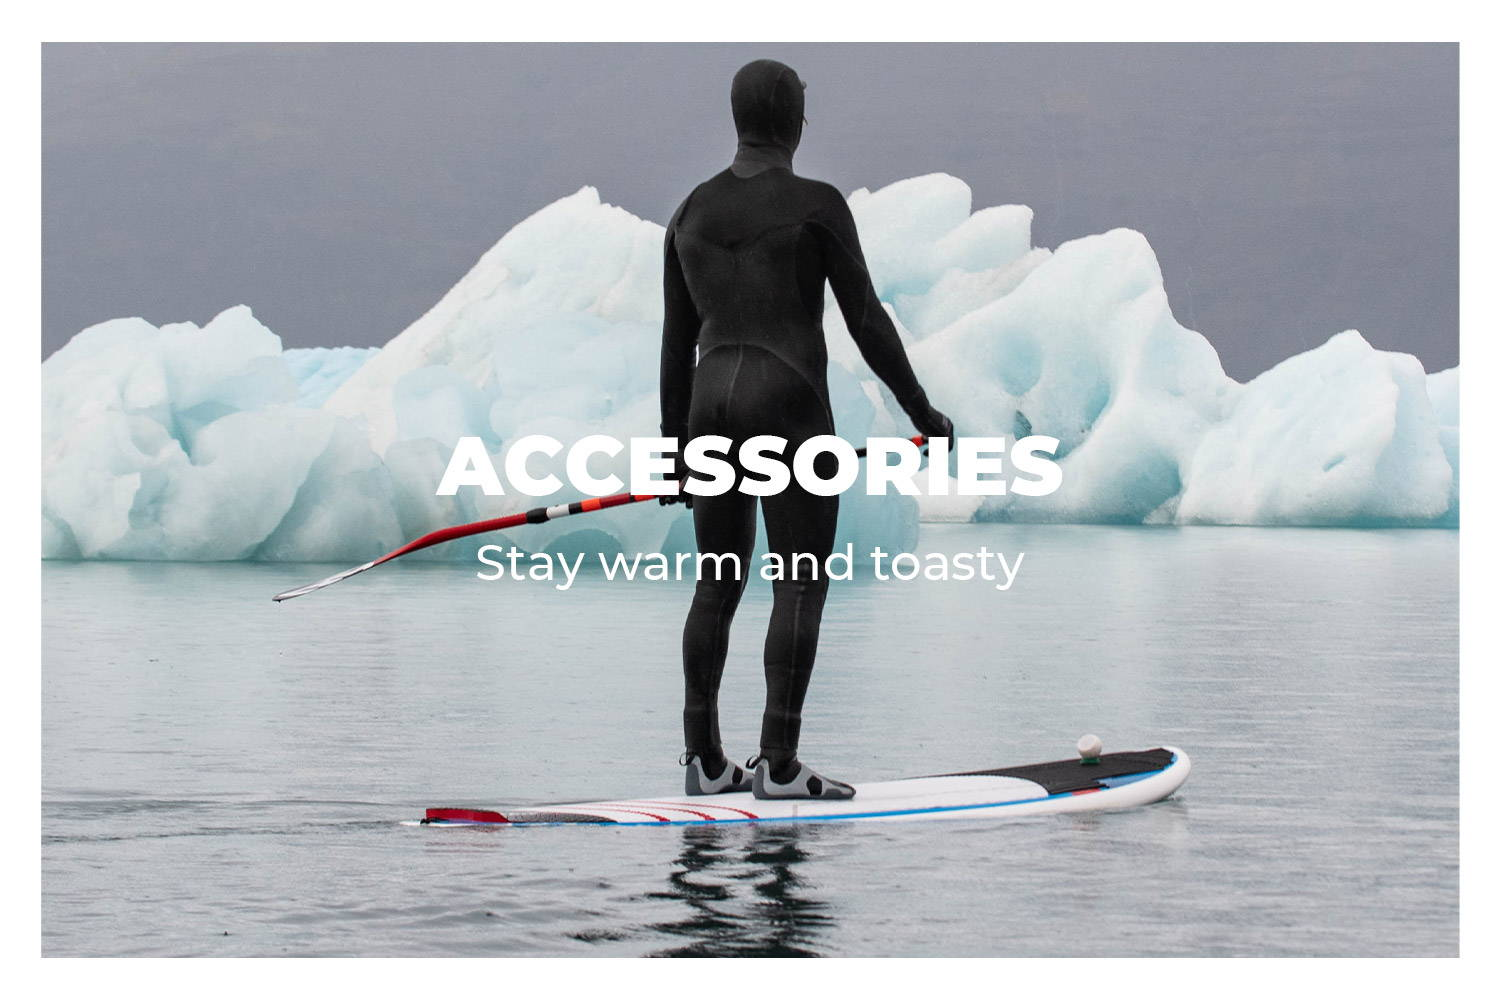 Accessories - stay warm and toasty